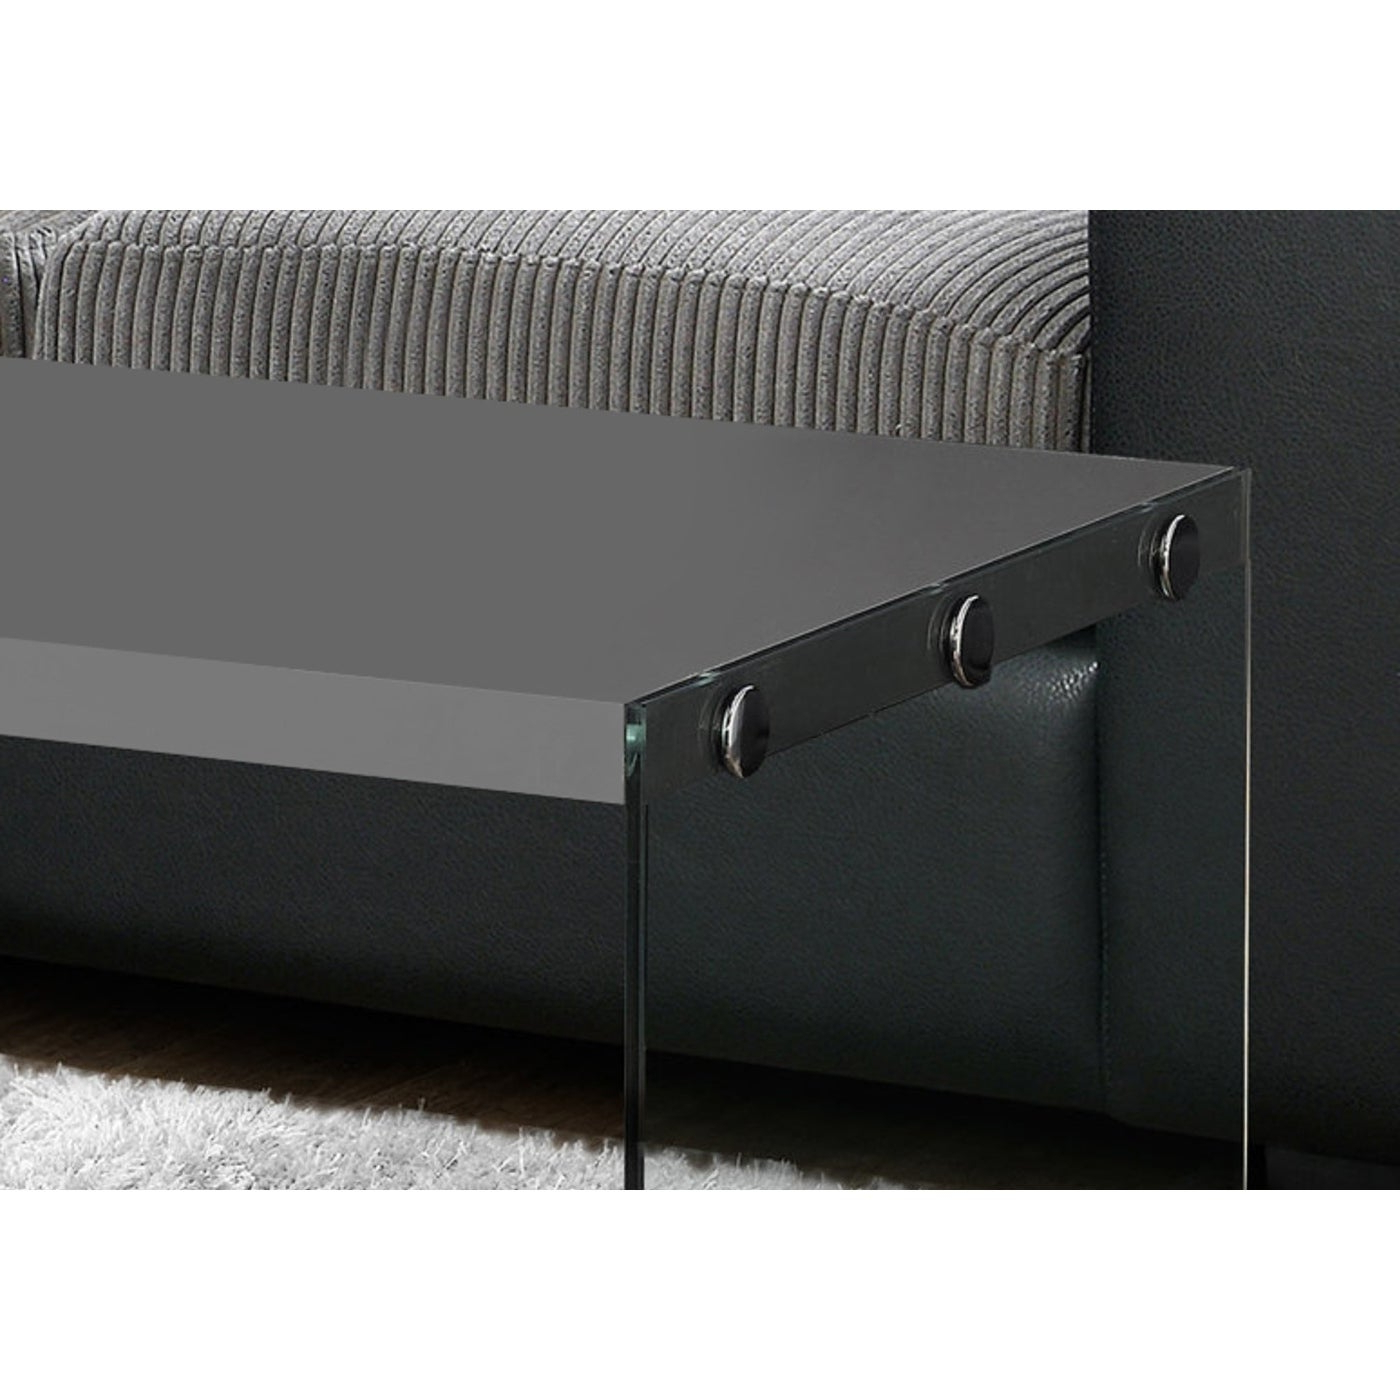 Gloss Grey Hollow Core Tempered Glass Cocktail Table In Most Up To Date Glossy White Hollow Core Tempered Glass Cocktail Tables (Gallery 7 of 20)